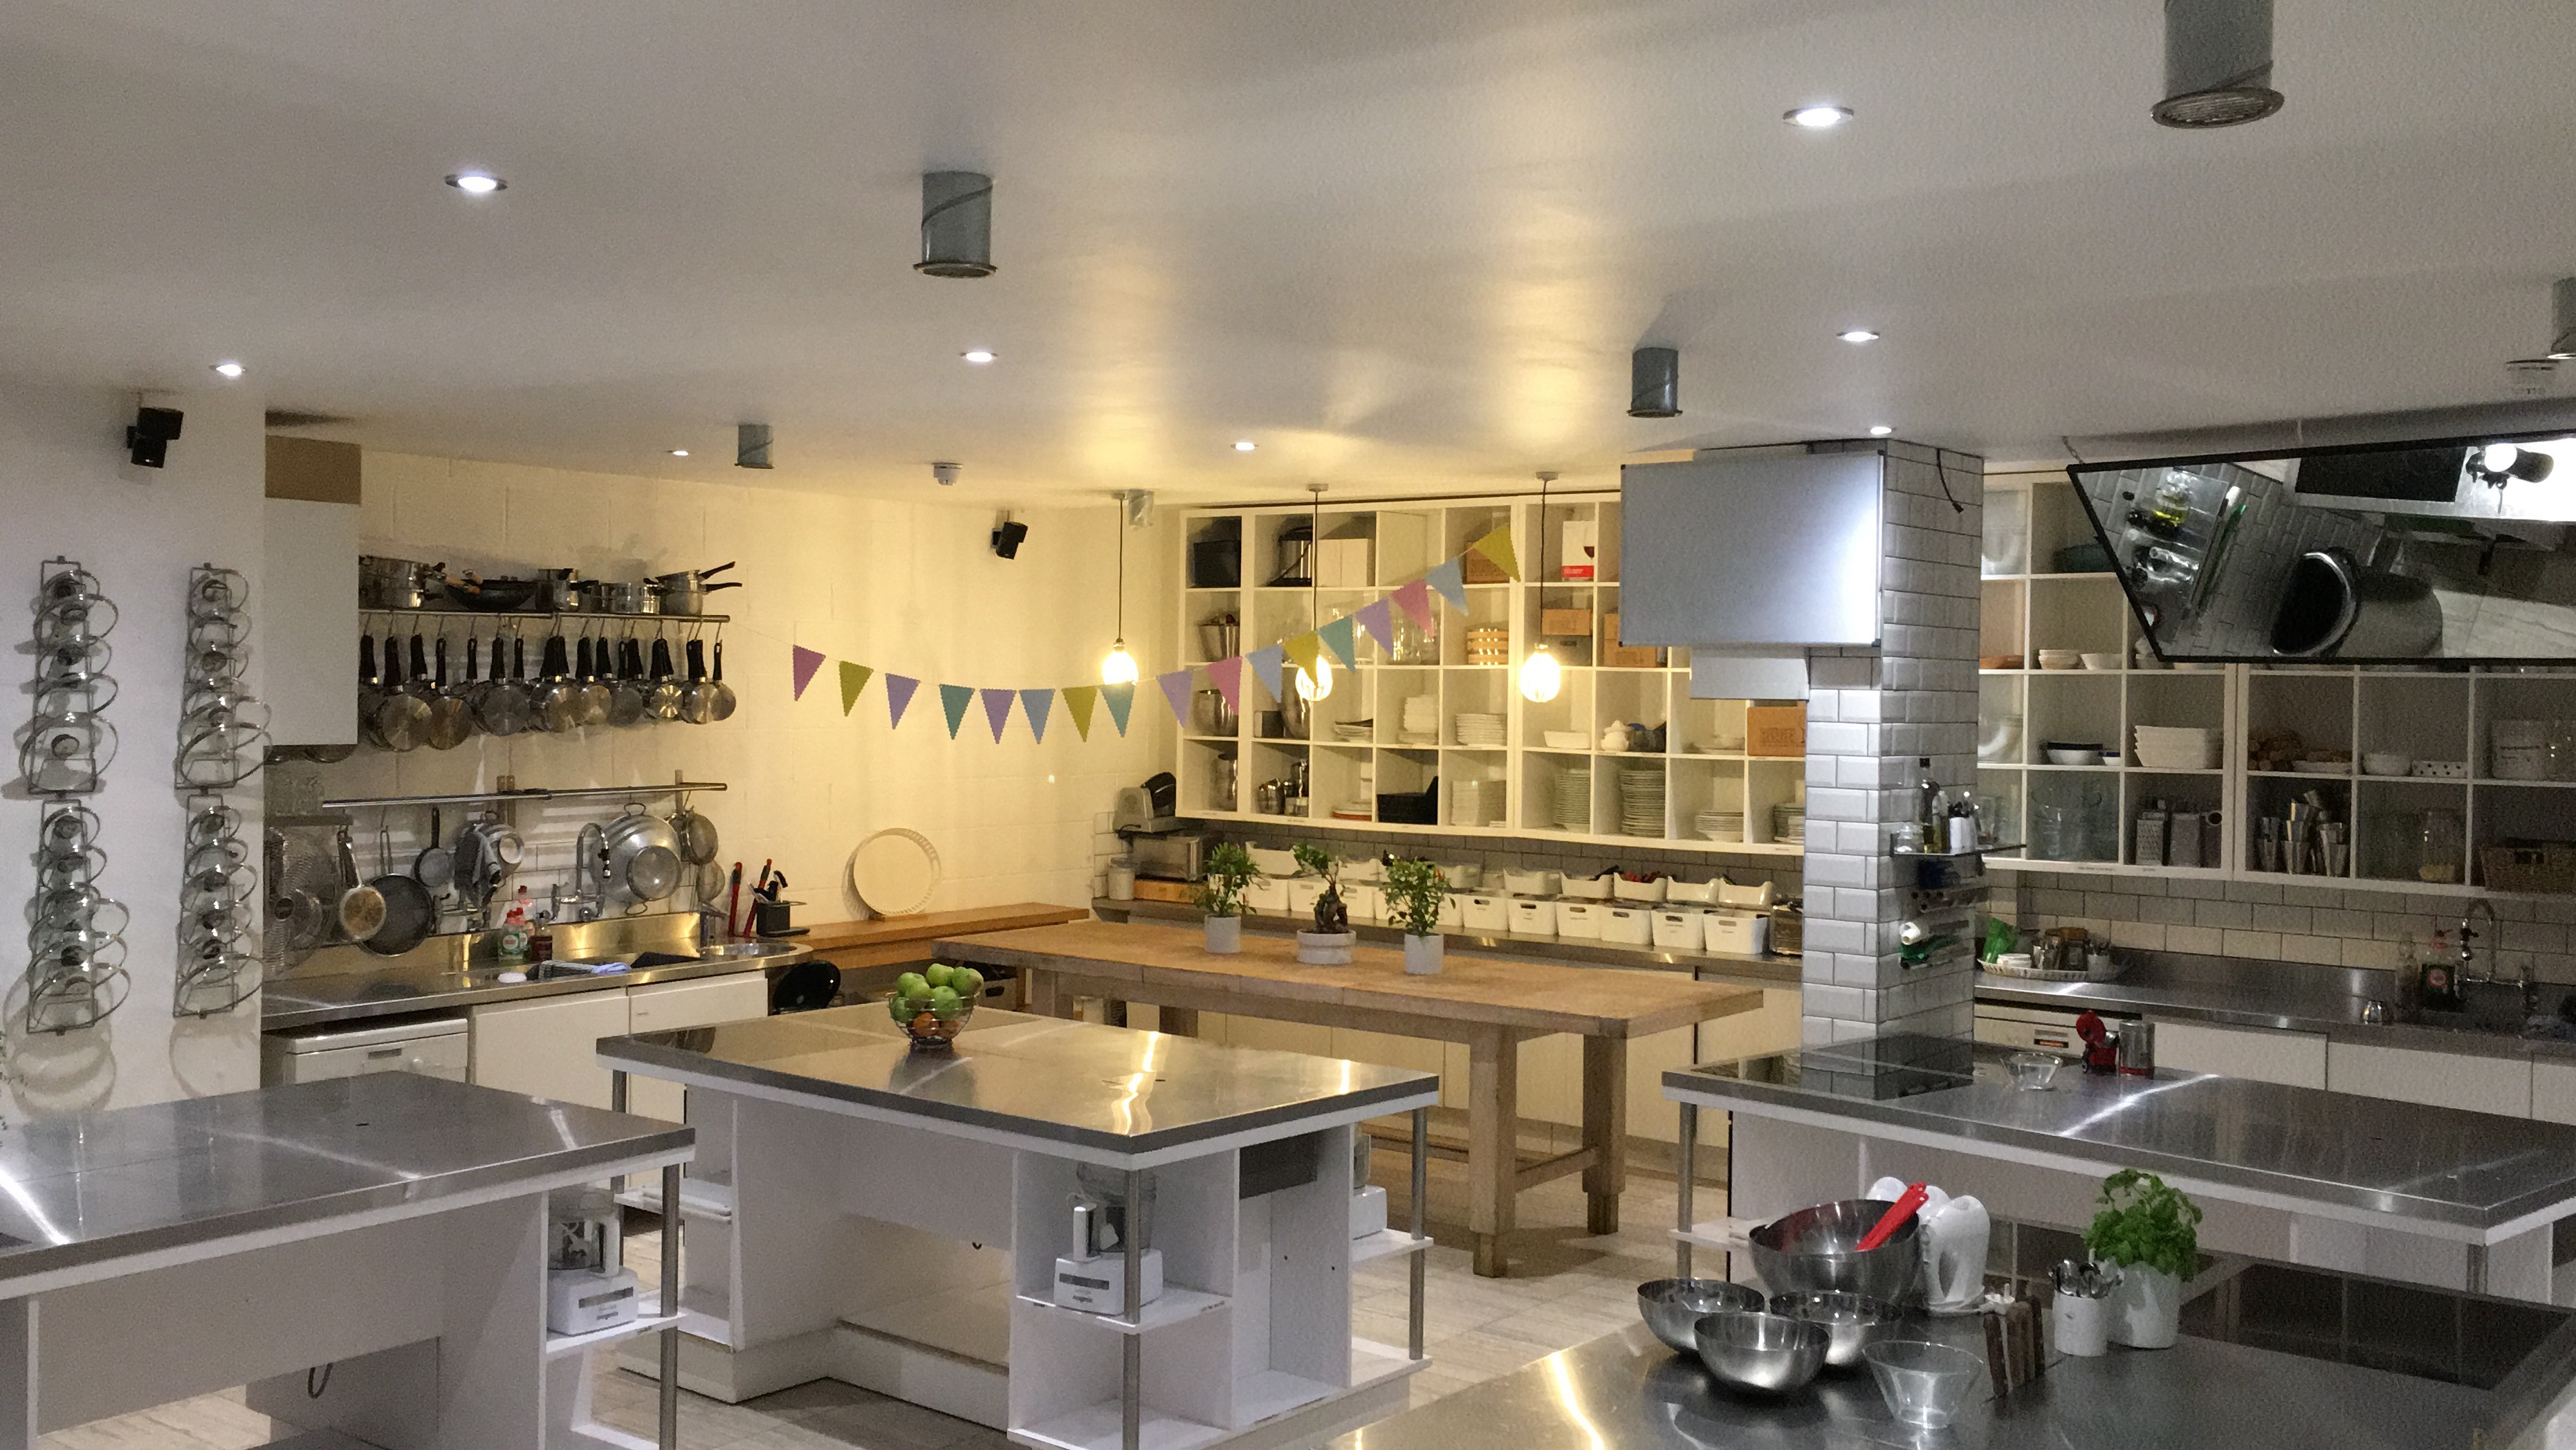 Best Of British - Scone Class by The Avenue Cookery School - food in London